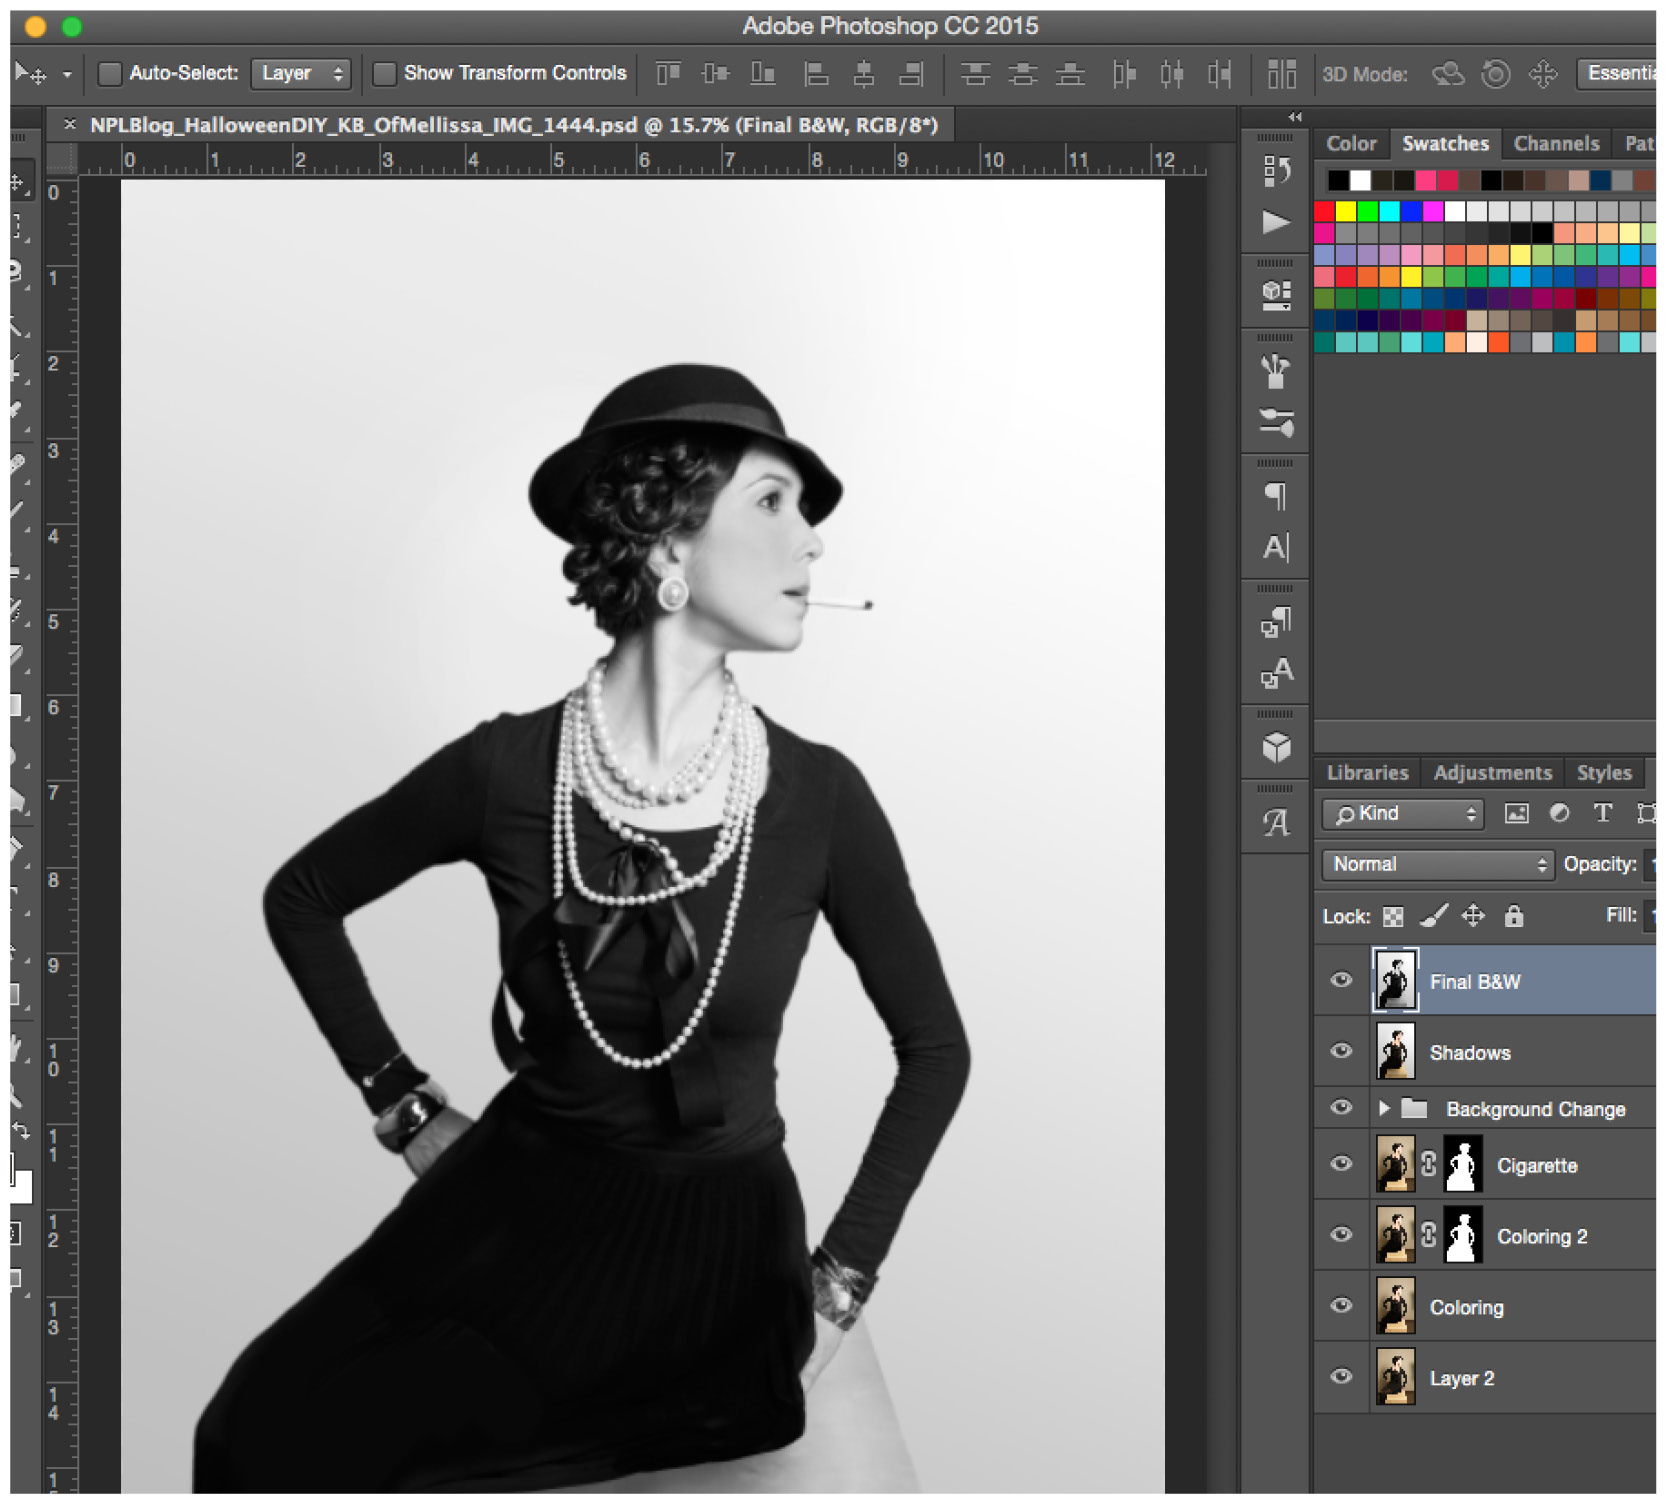 Replica Coco Chanel photograph post processing in Photoshop